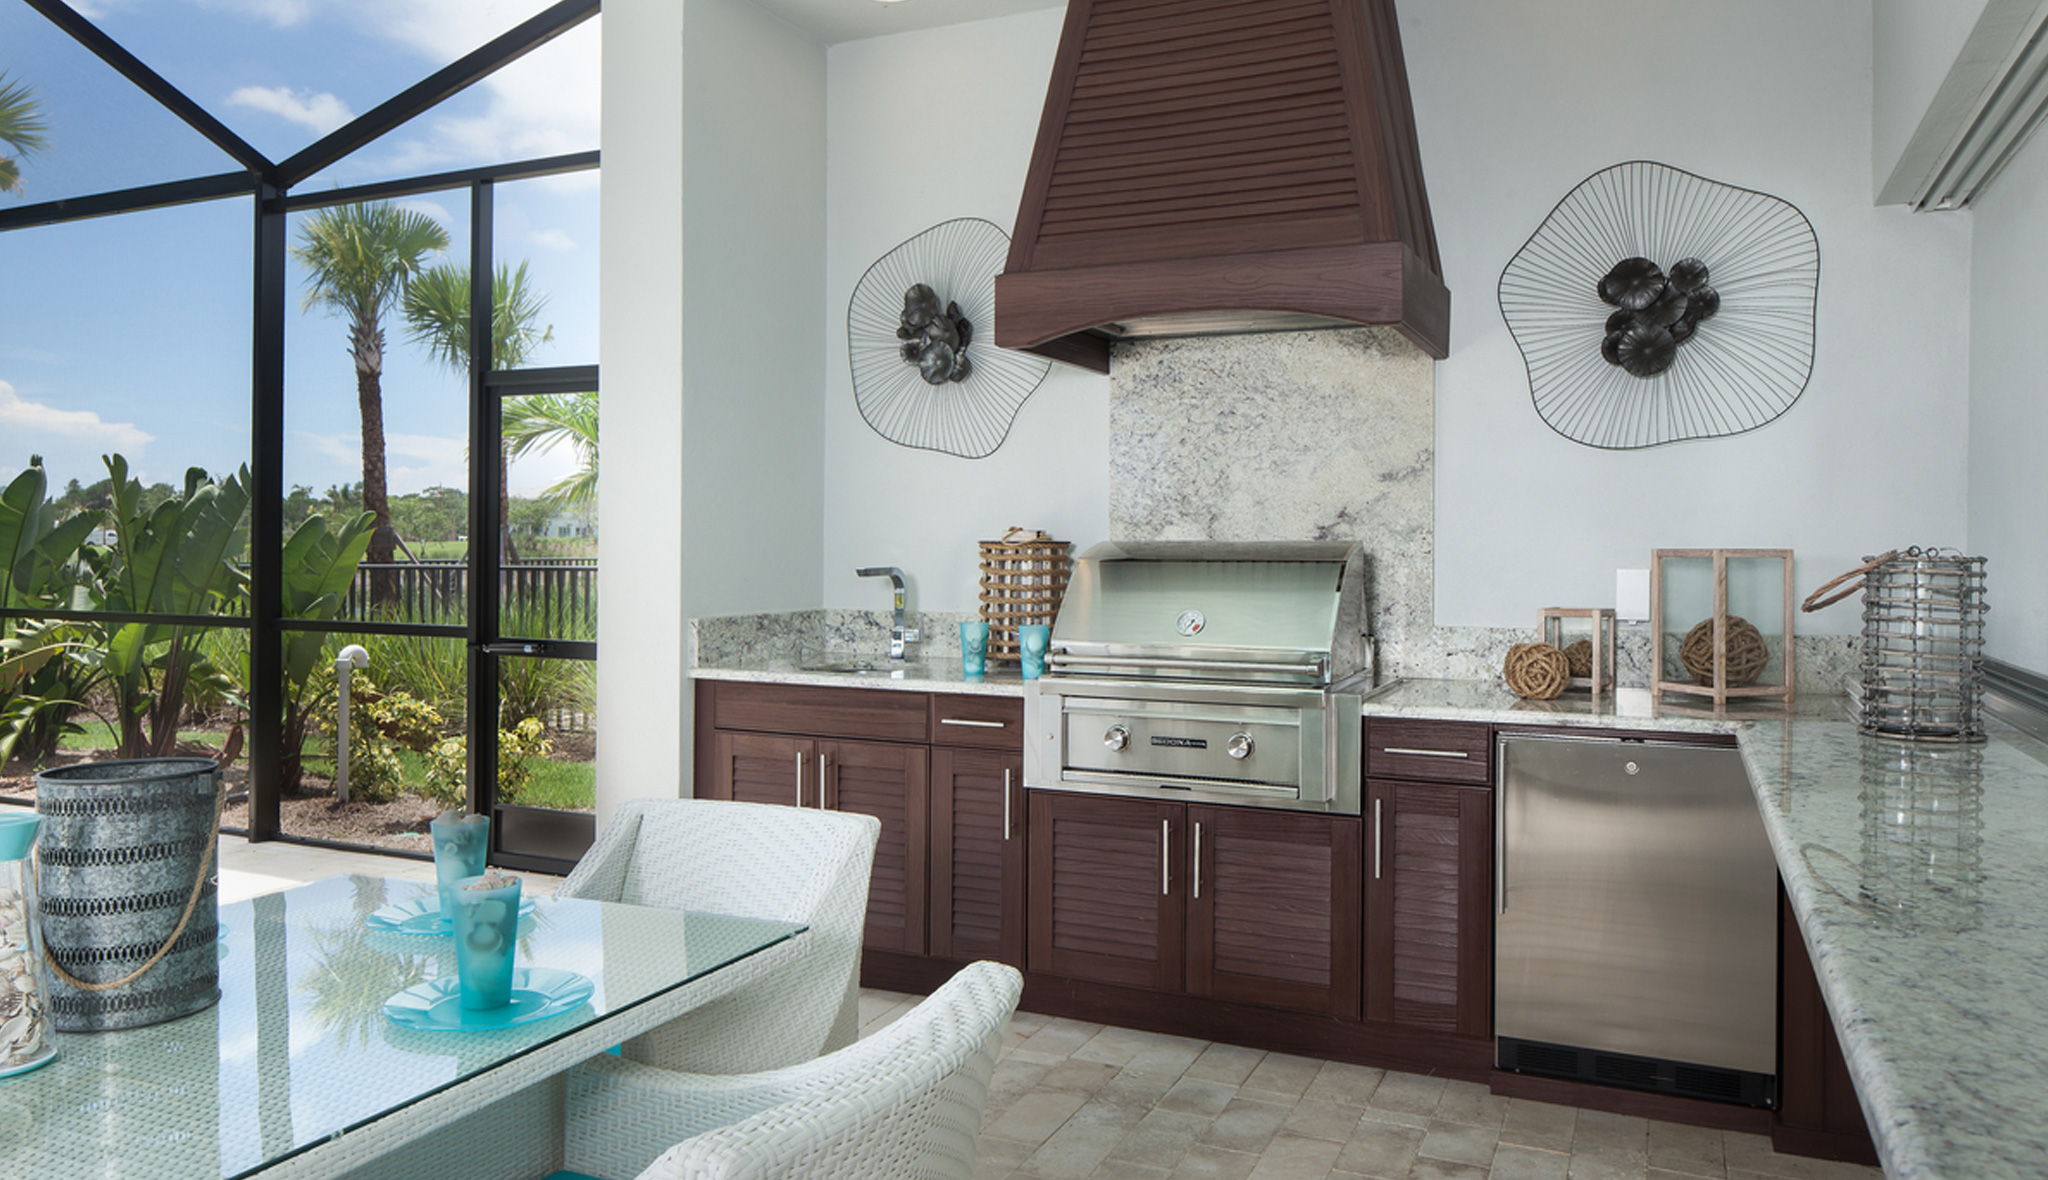 Best Weatherproof Outdoor Summer Kitchen Cabinets in ...